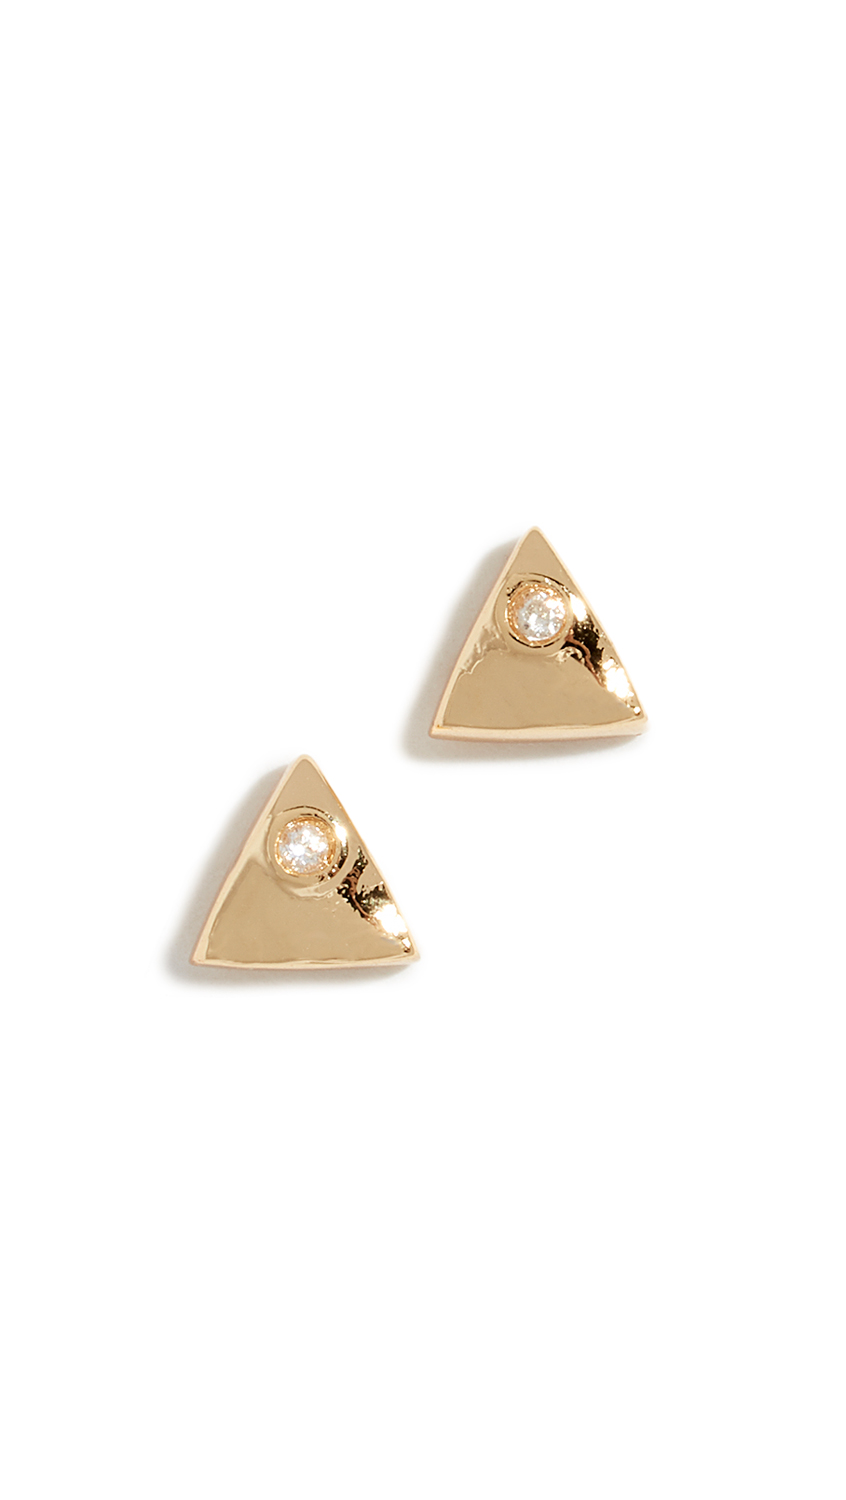 Gorjana Triangle Shimmer Stud Earrings - Yellow Gold